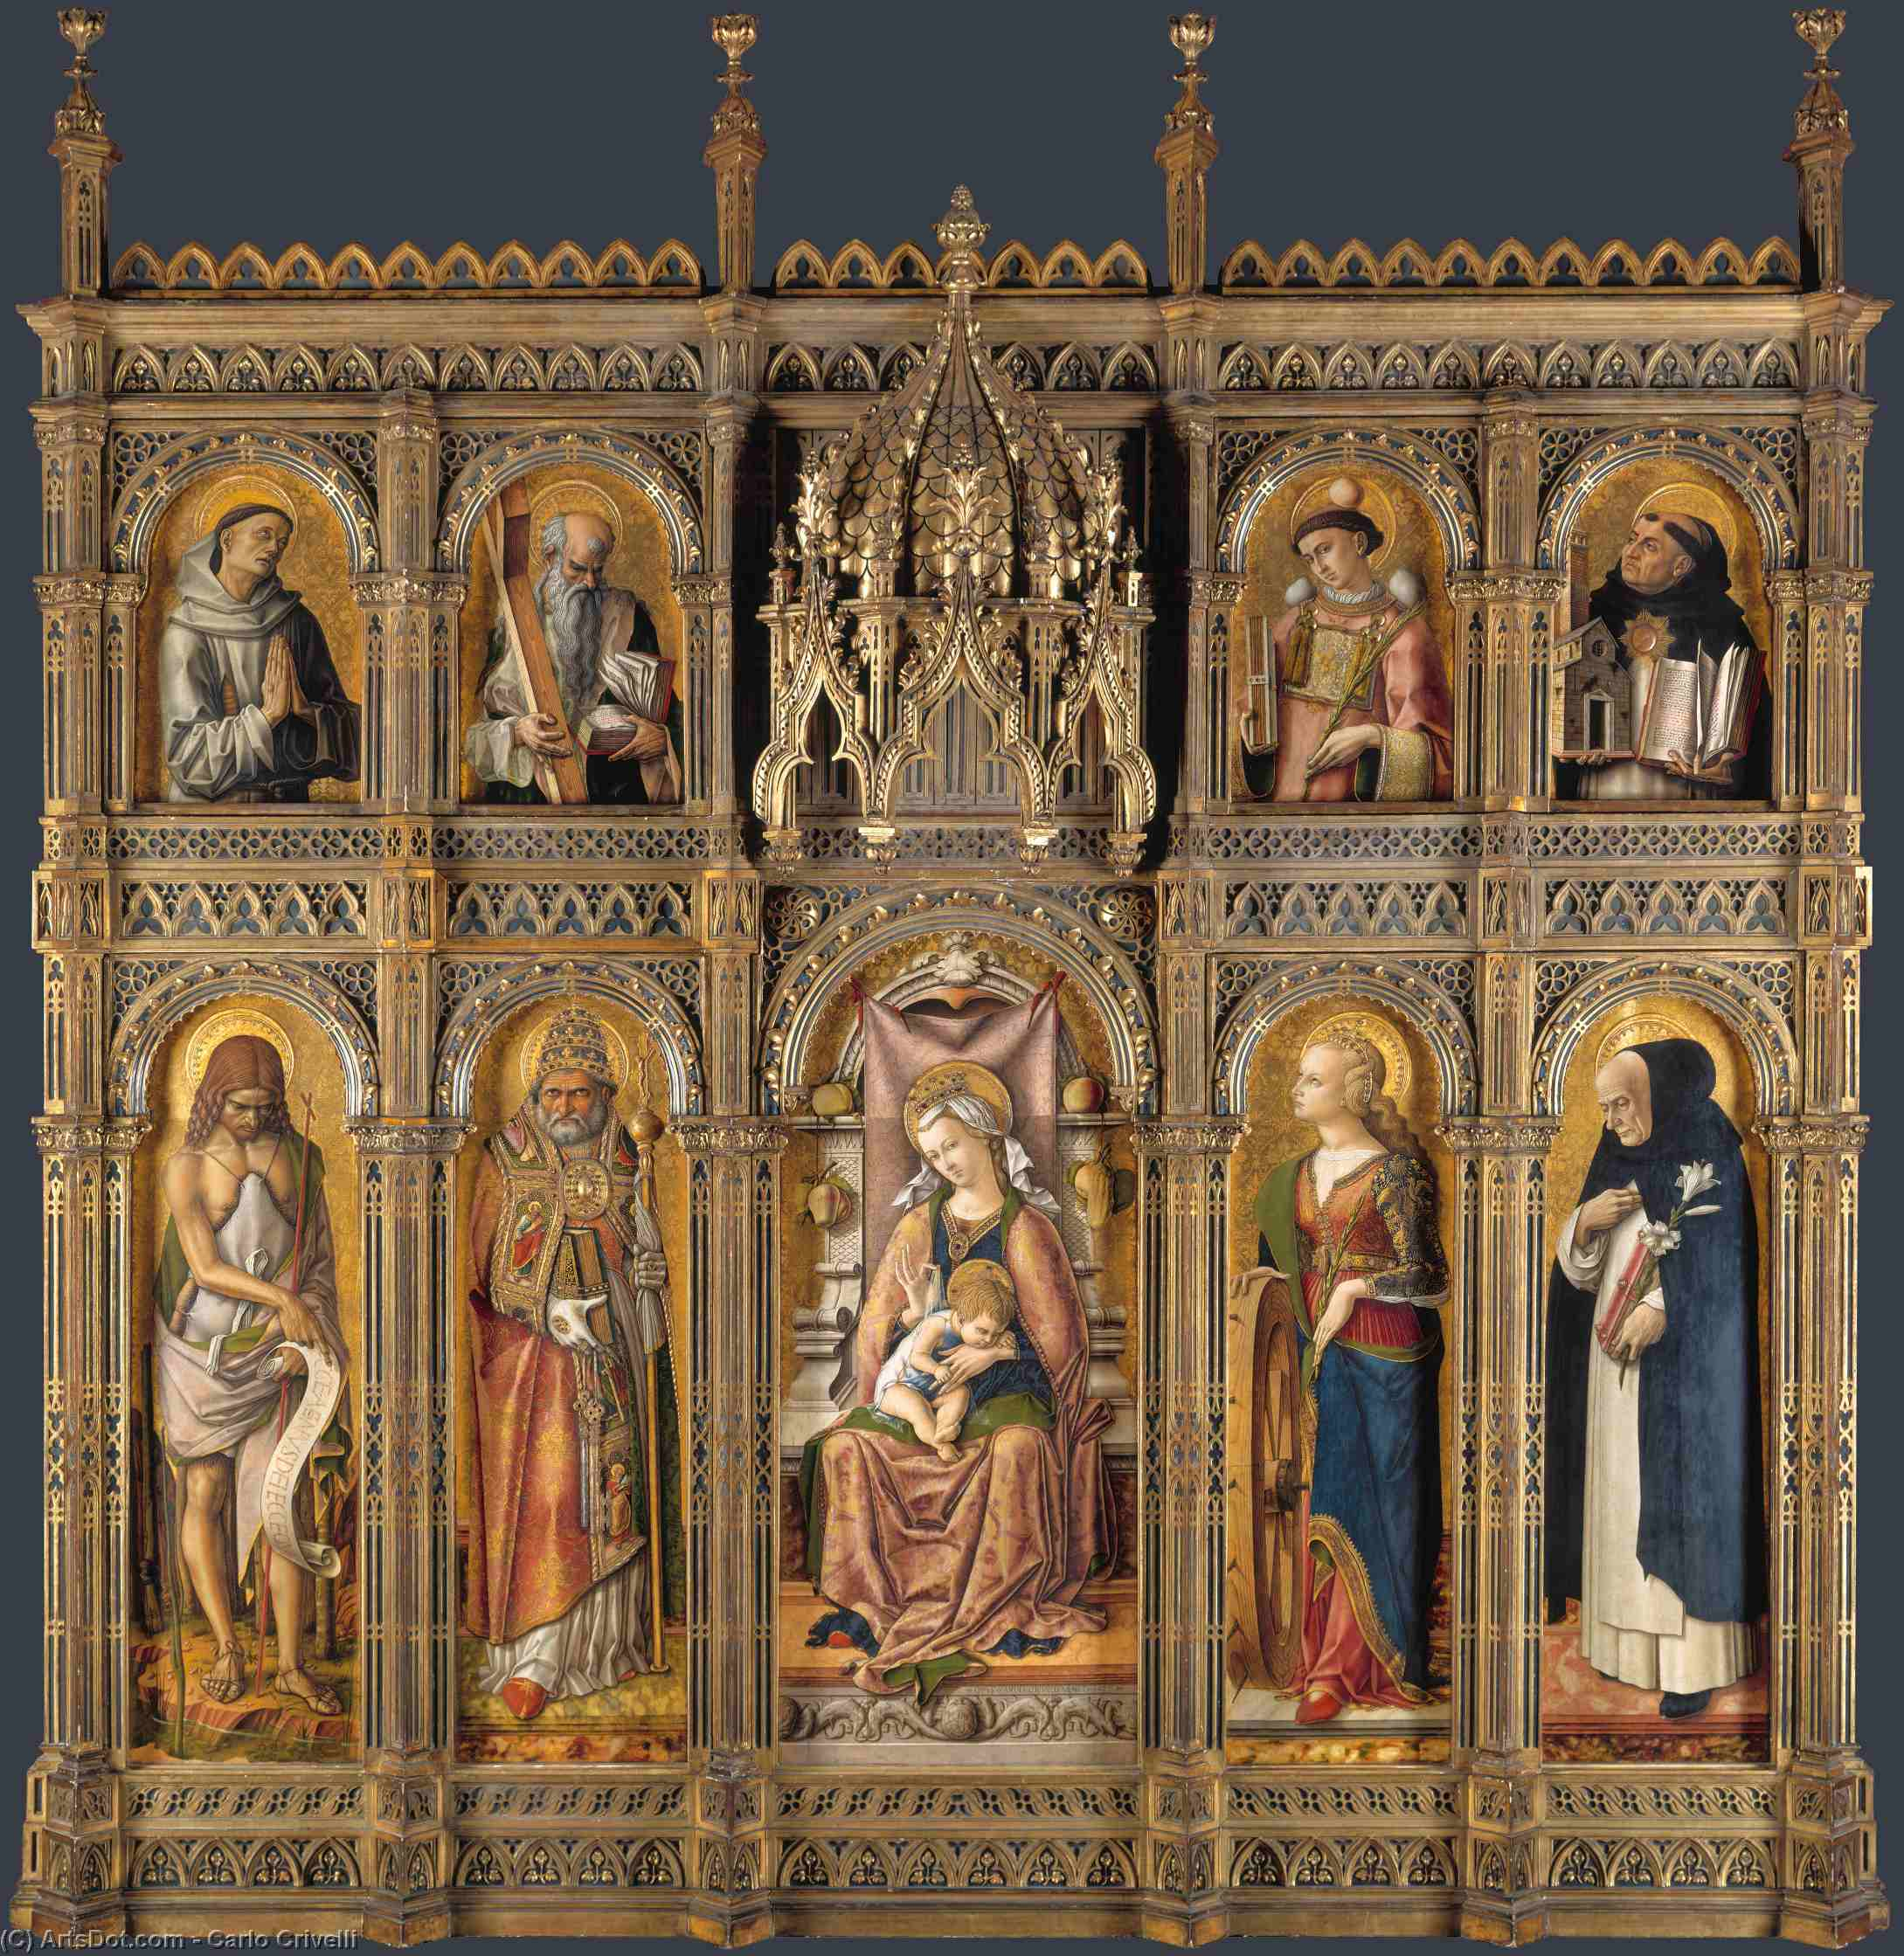 Wikioo.org - The Encyclopedia of Fine Arts - Painting, Artwork by Carlo Crivelli - The demidoff altarpiece